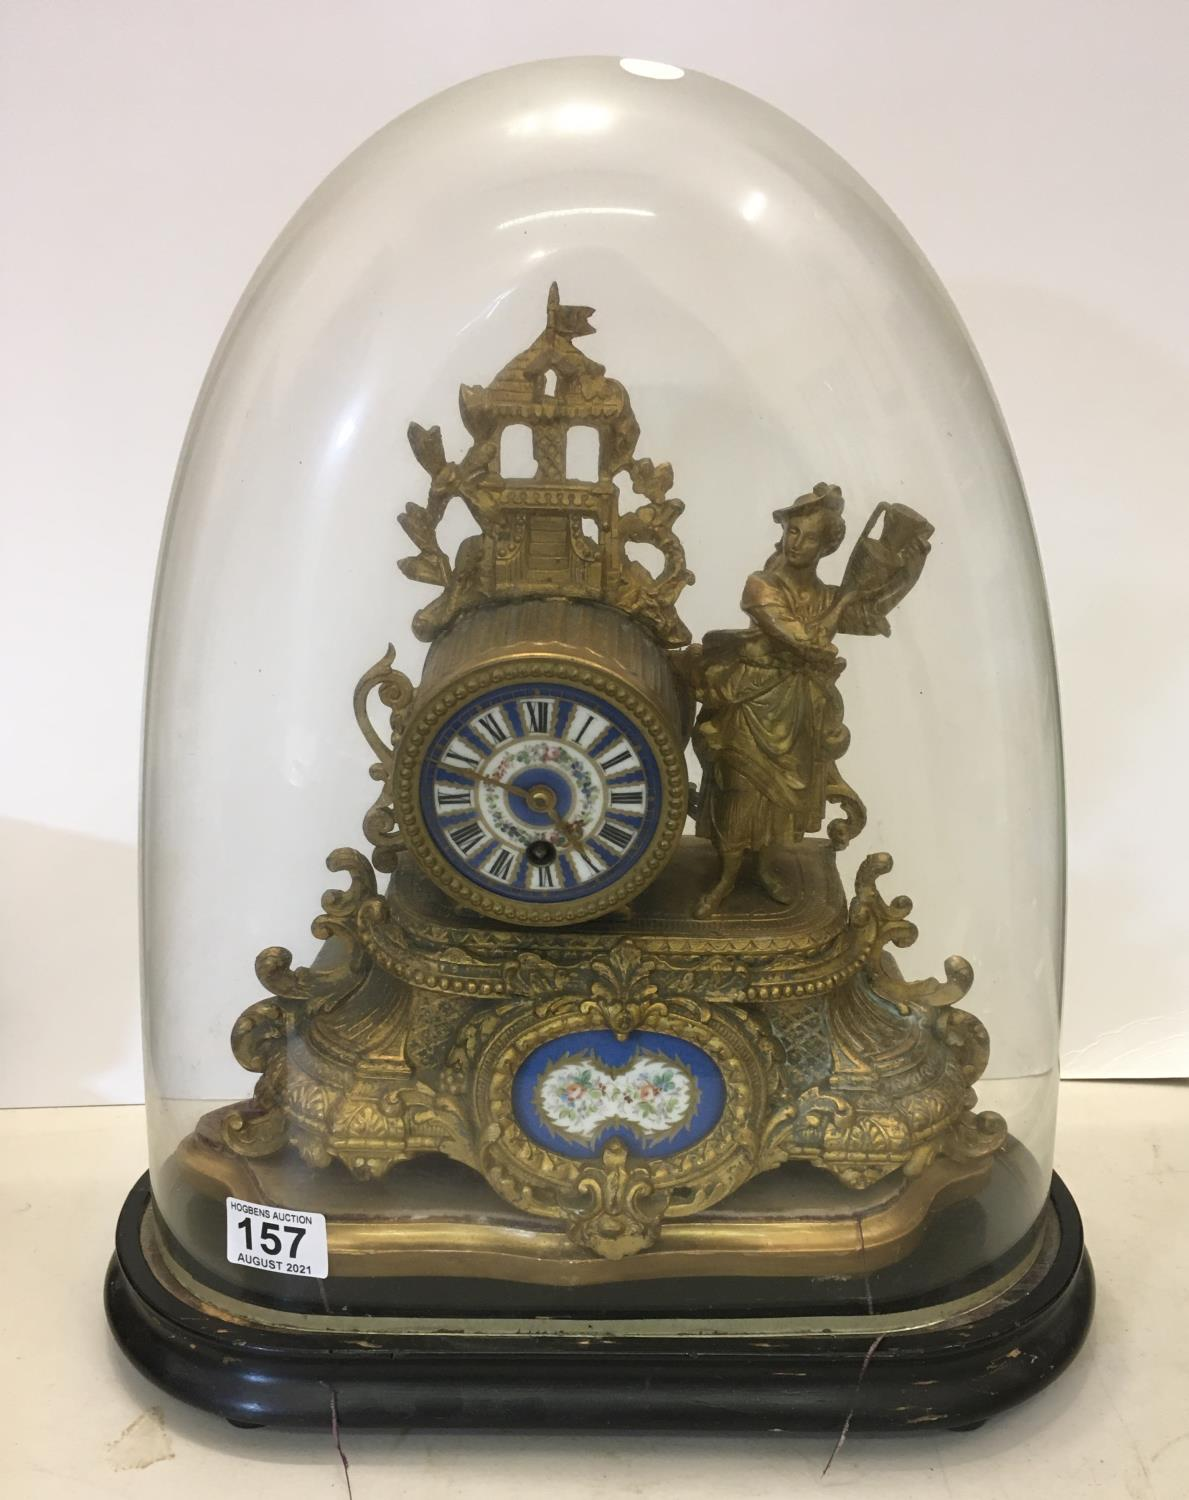 Gilt spelter mantle clock with figural Lady to the side, probably with Sevres plaques on original